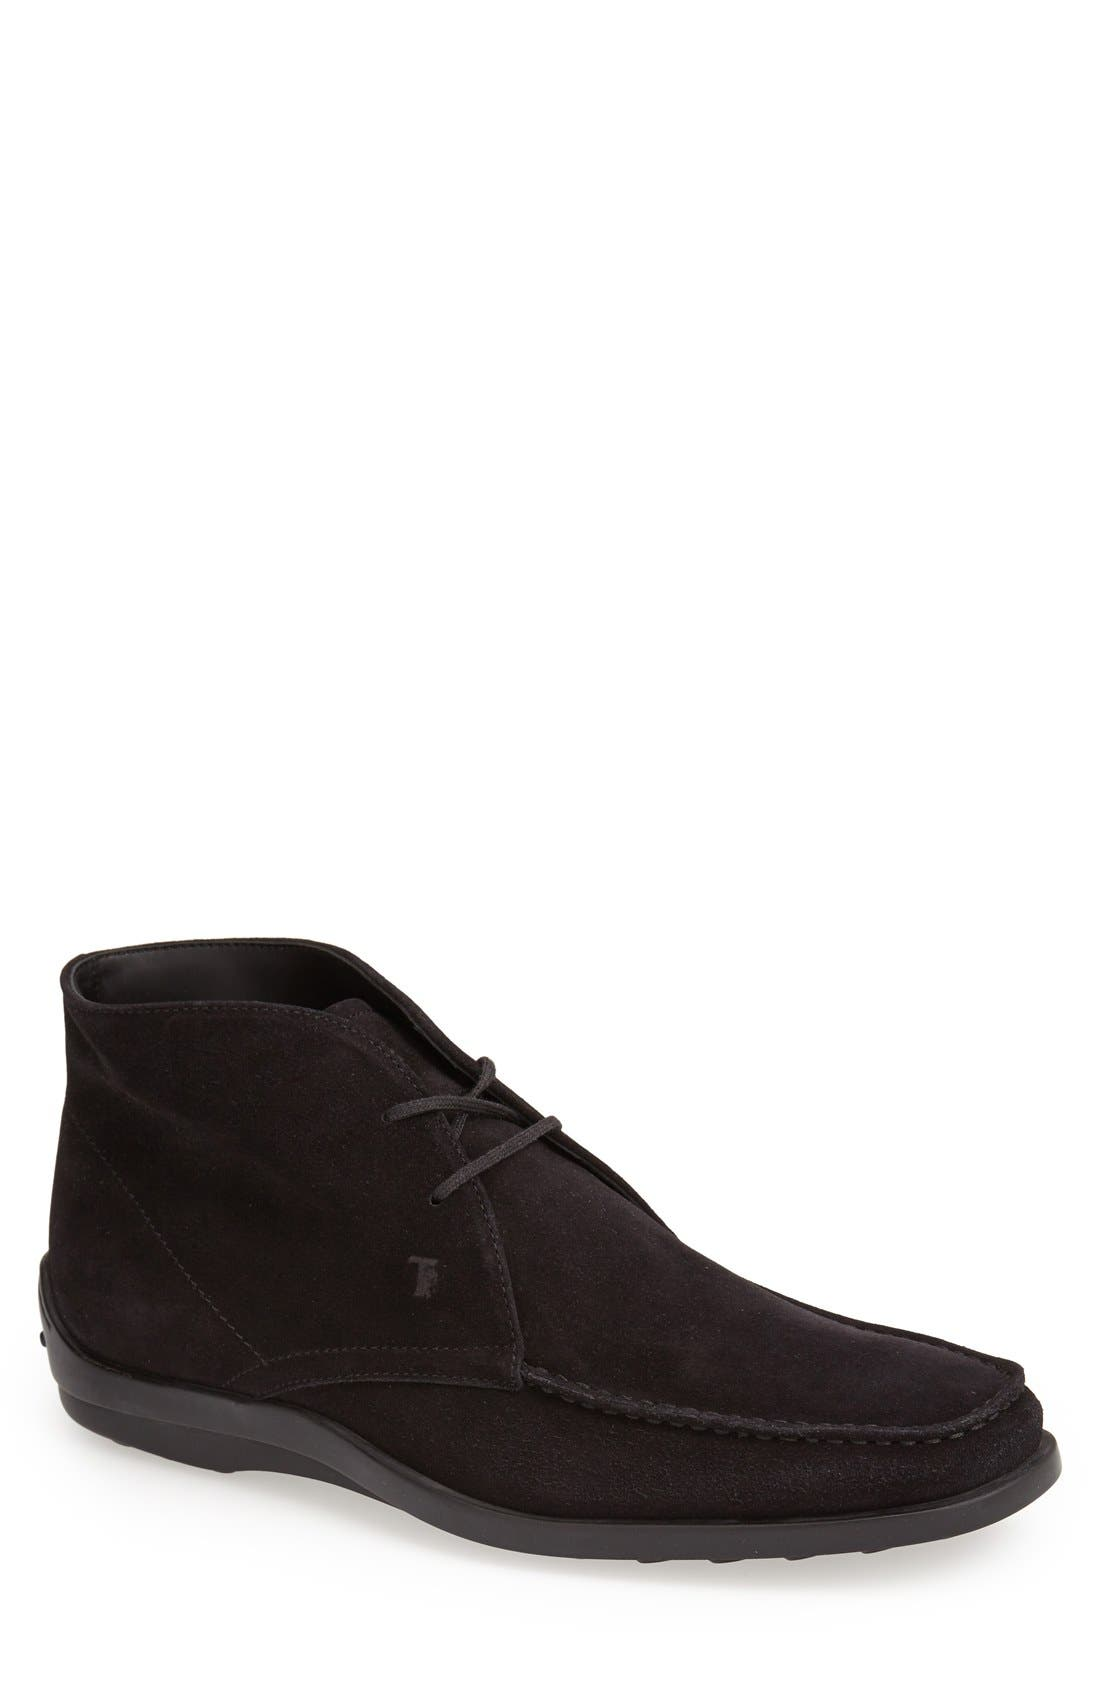 Main Image - Tod's 'Quinn' Ankle Boot